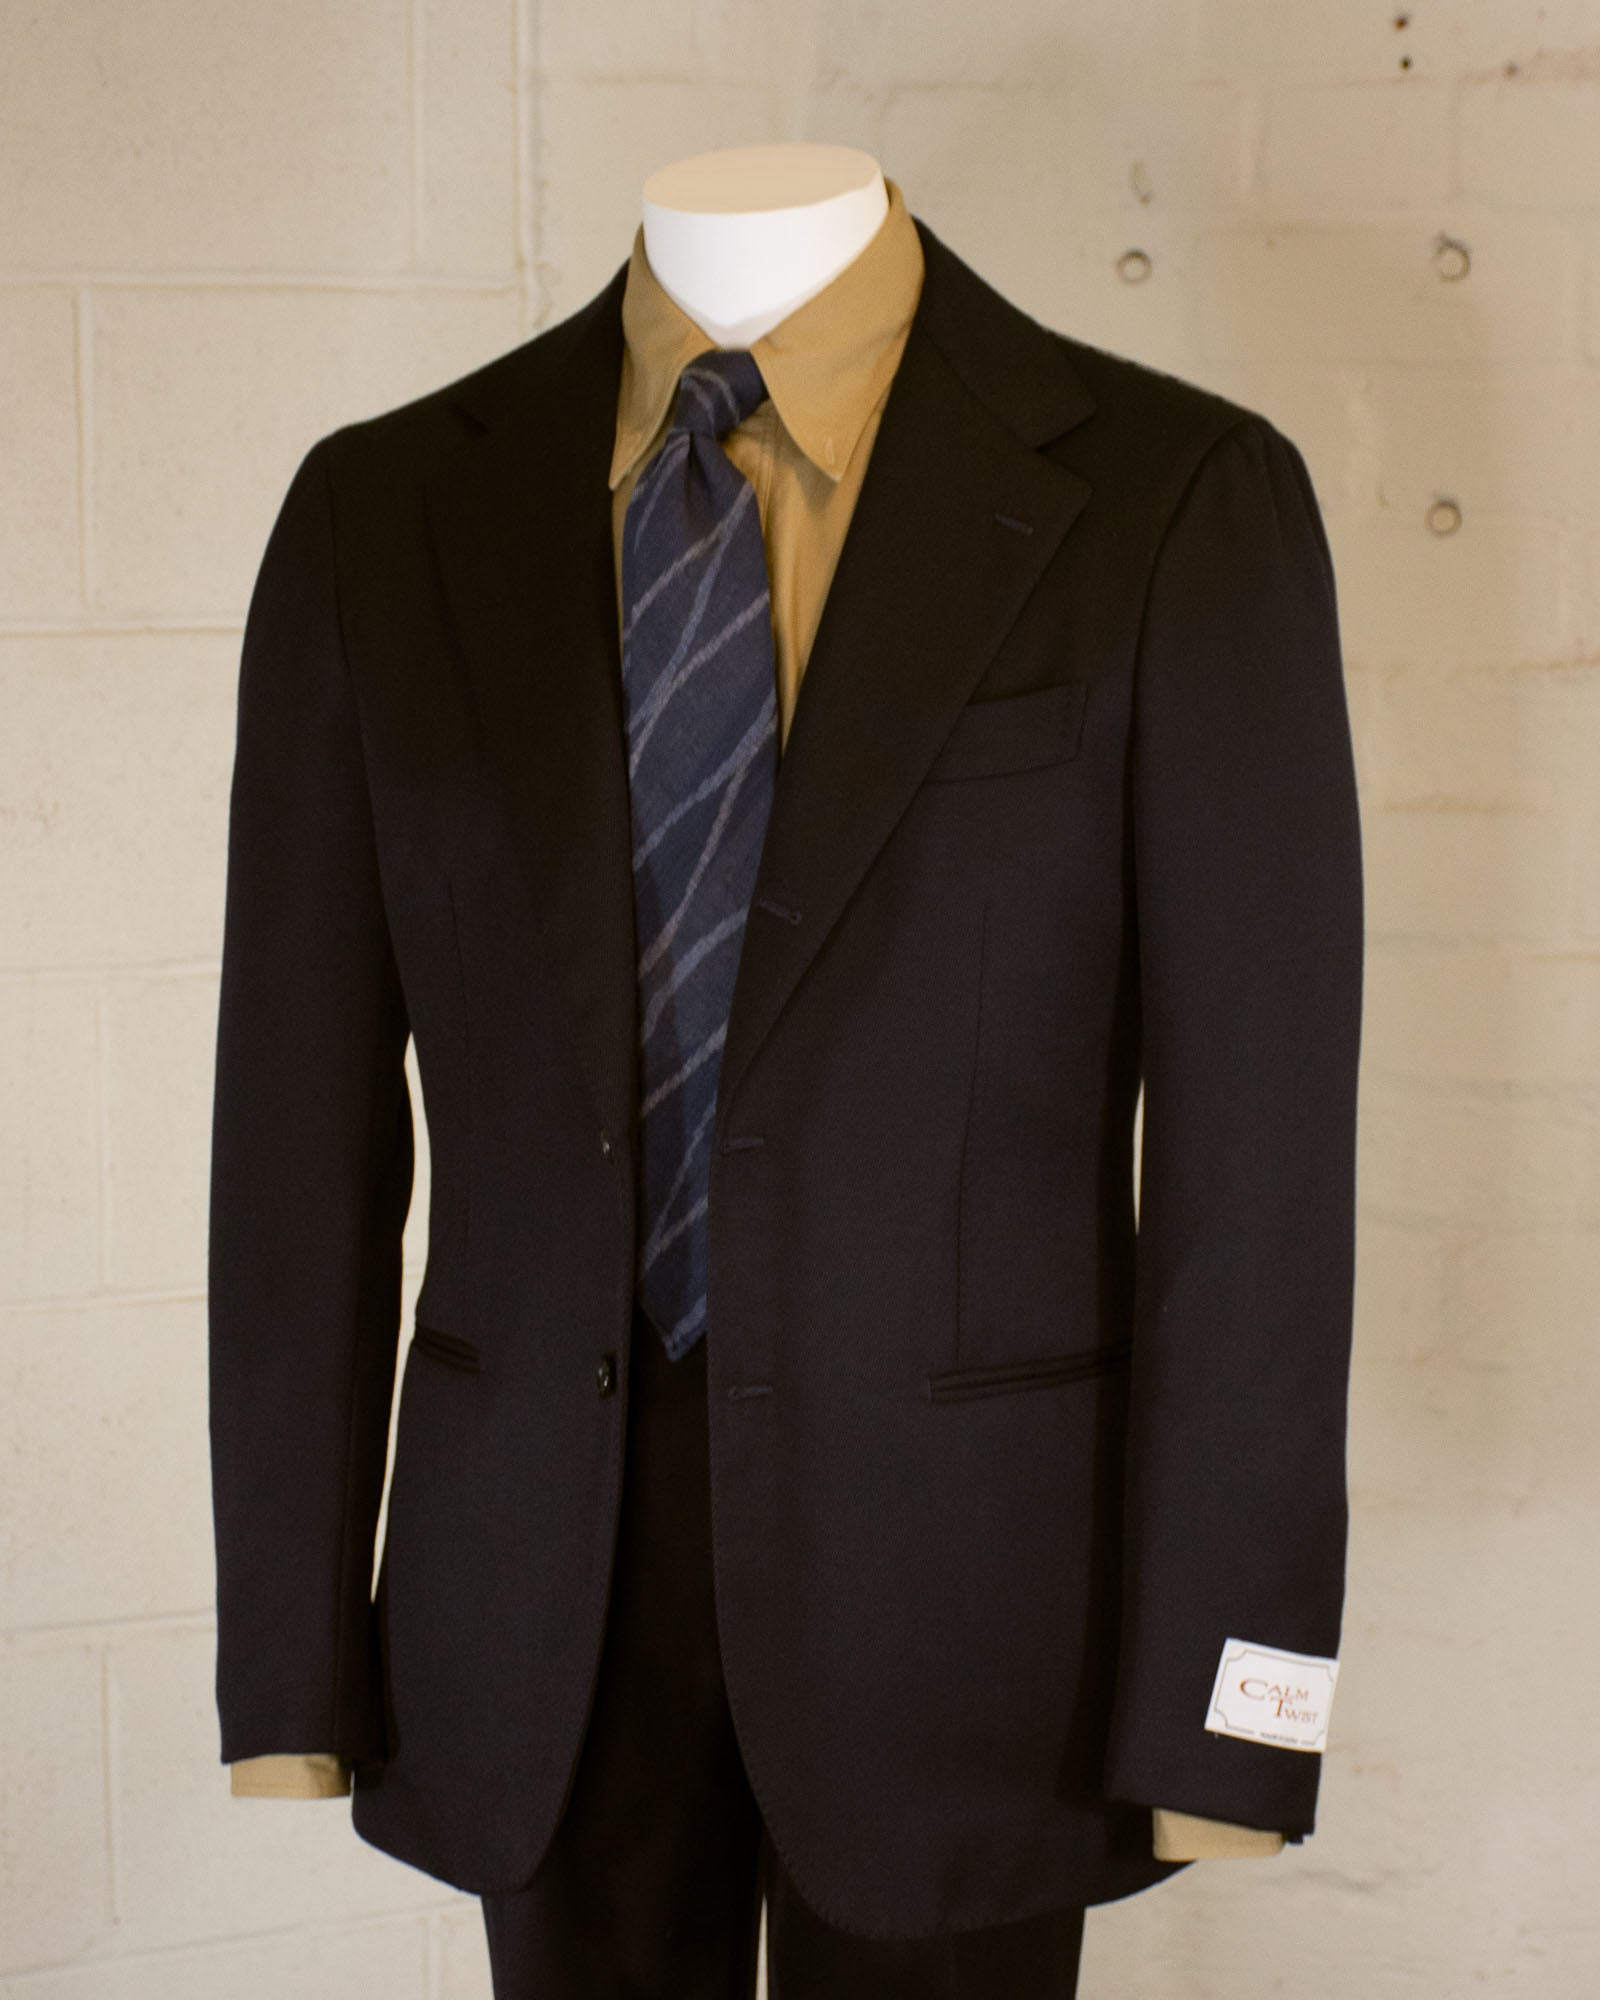 NAMIMAN Carico Hand Finished Single Breasted Suit